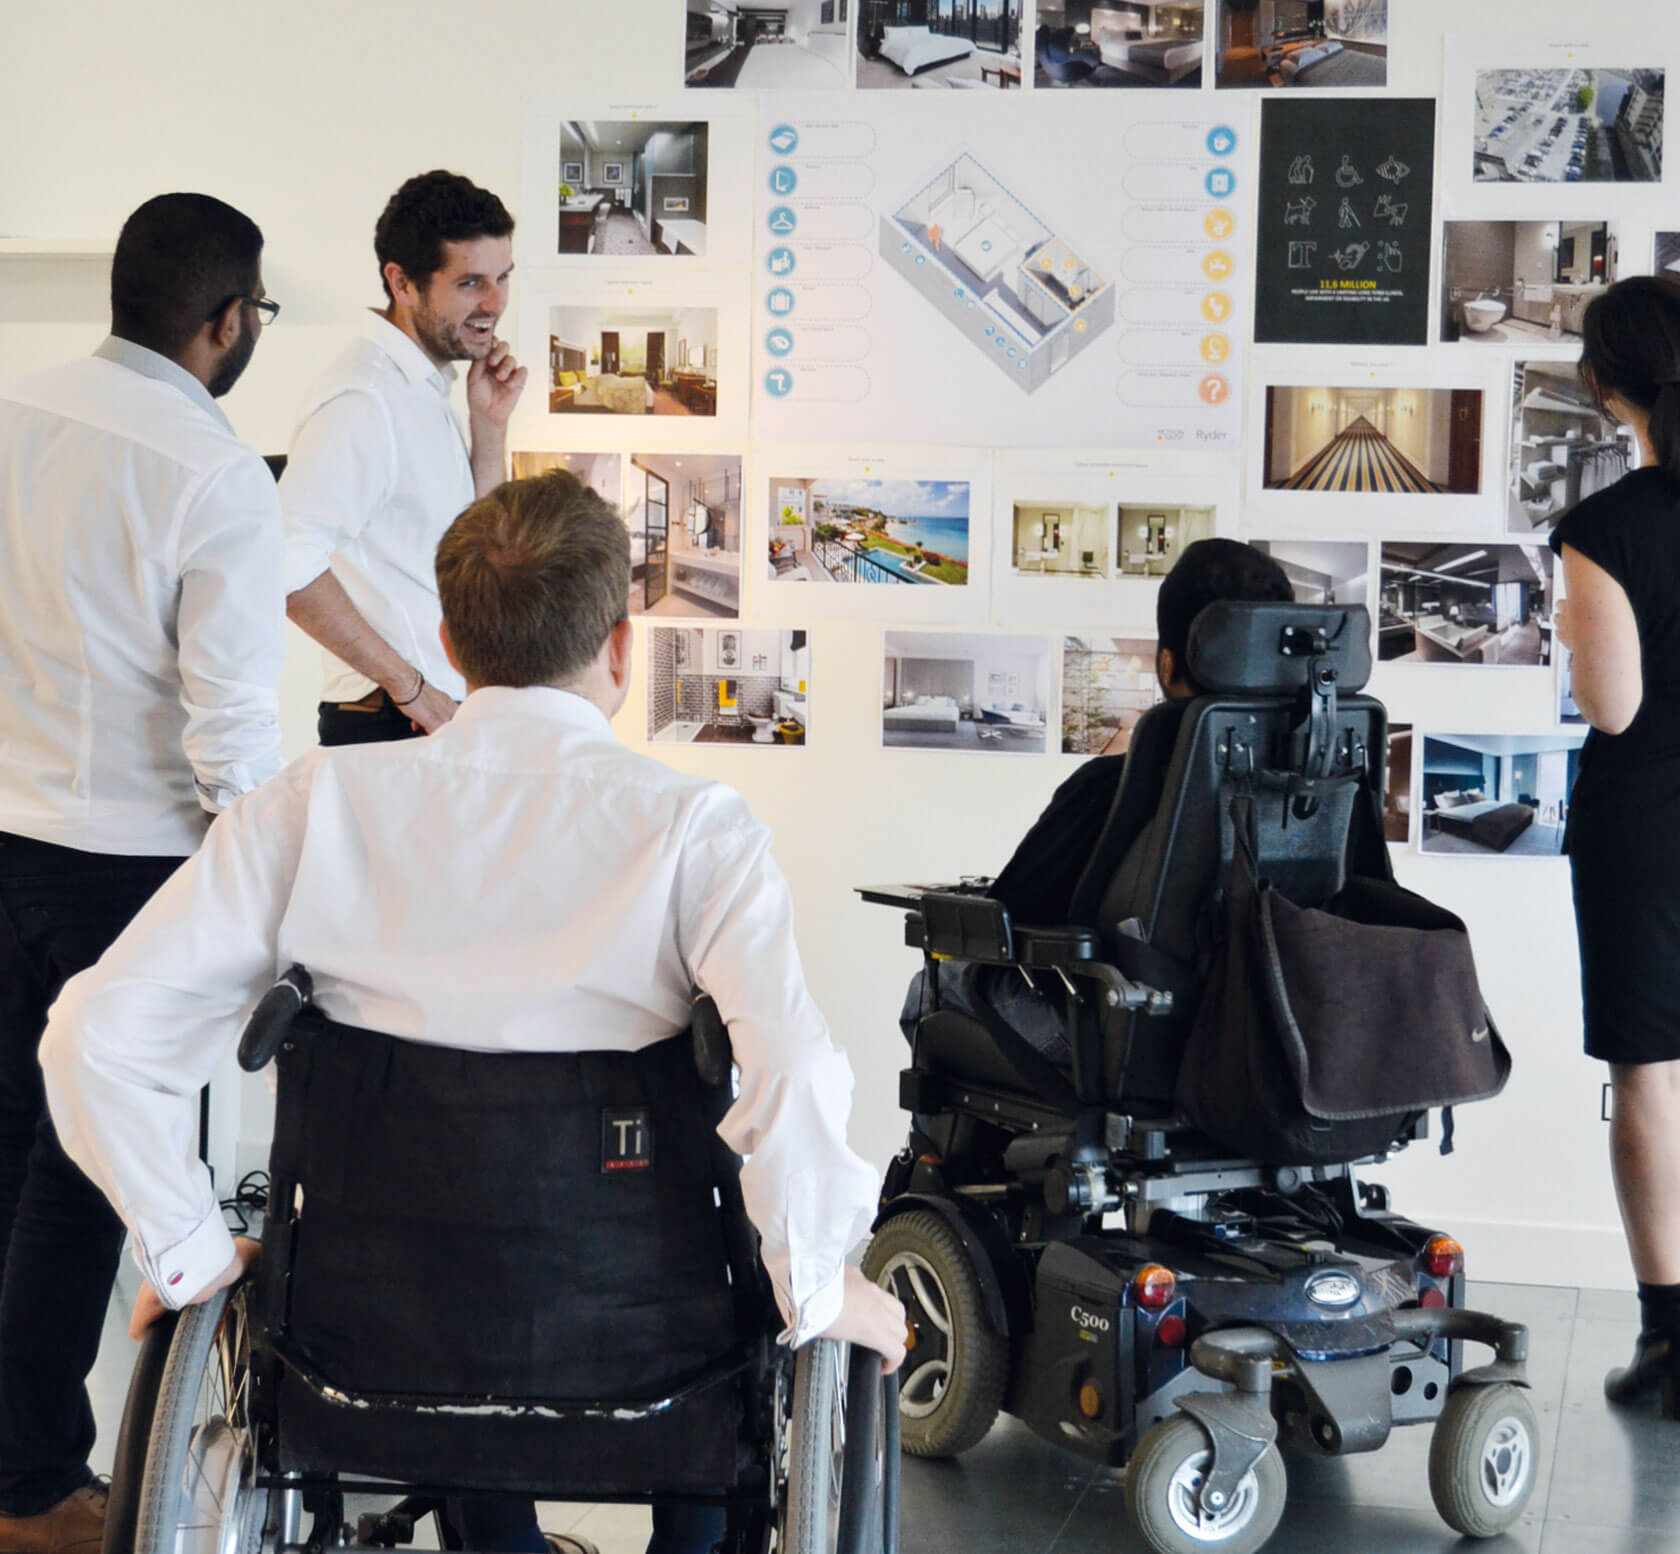 Five people, some standing, some seated in wheelchairs, discussing designs on a wall together.